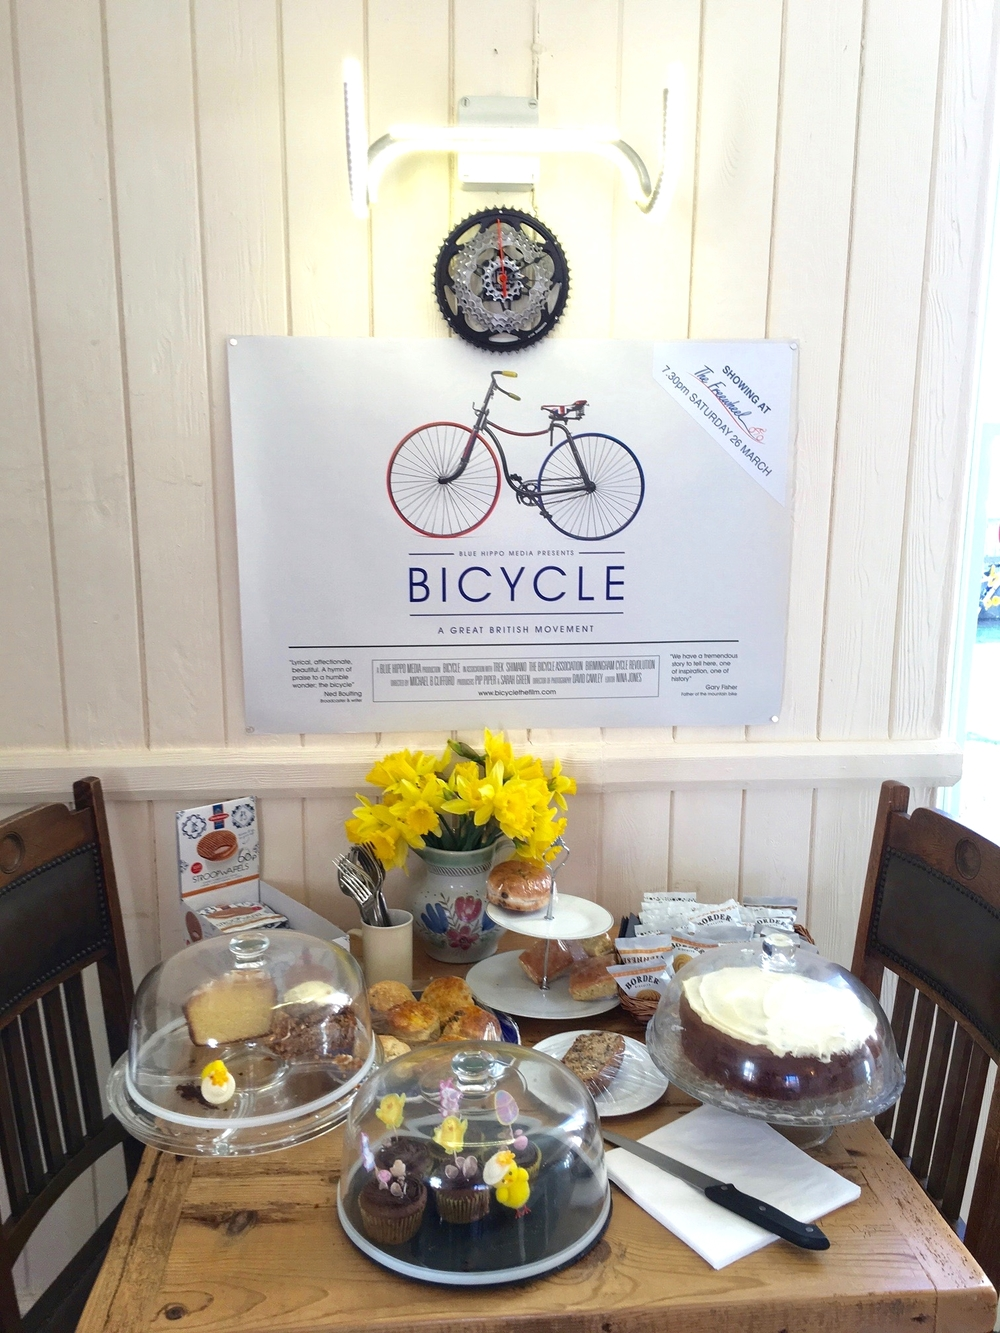 Cakes and cycling movies!